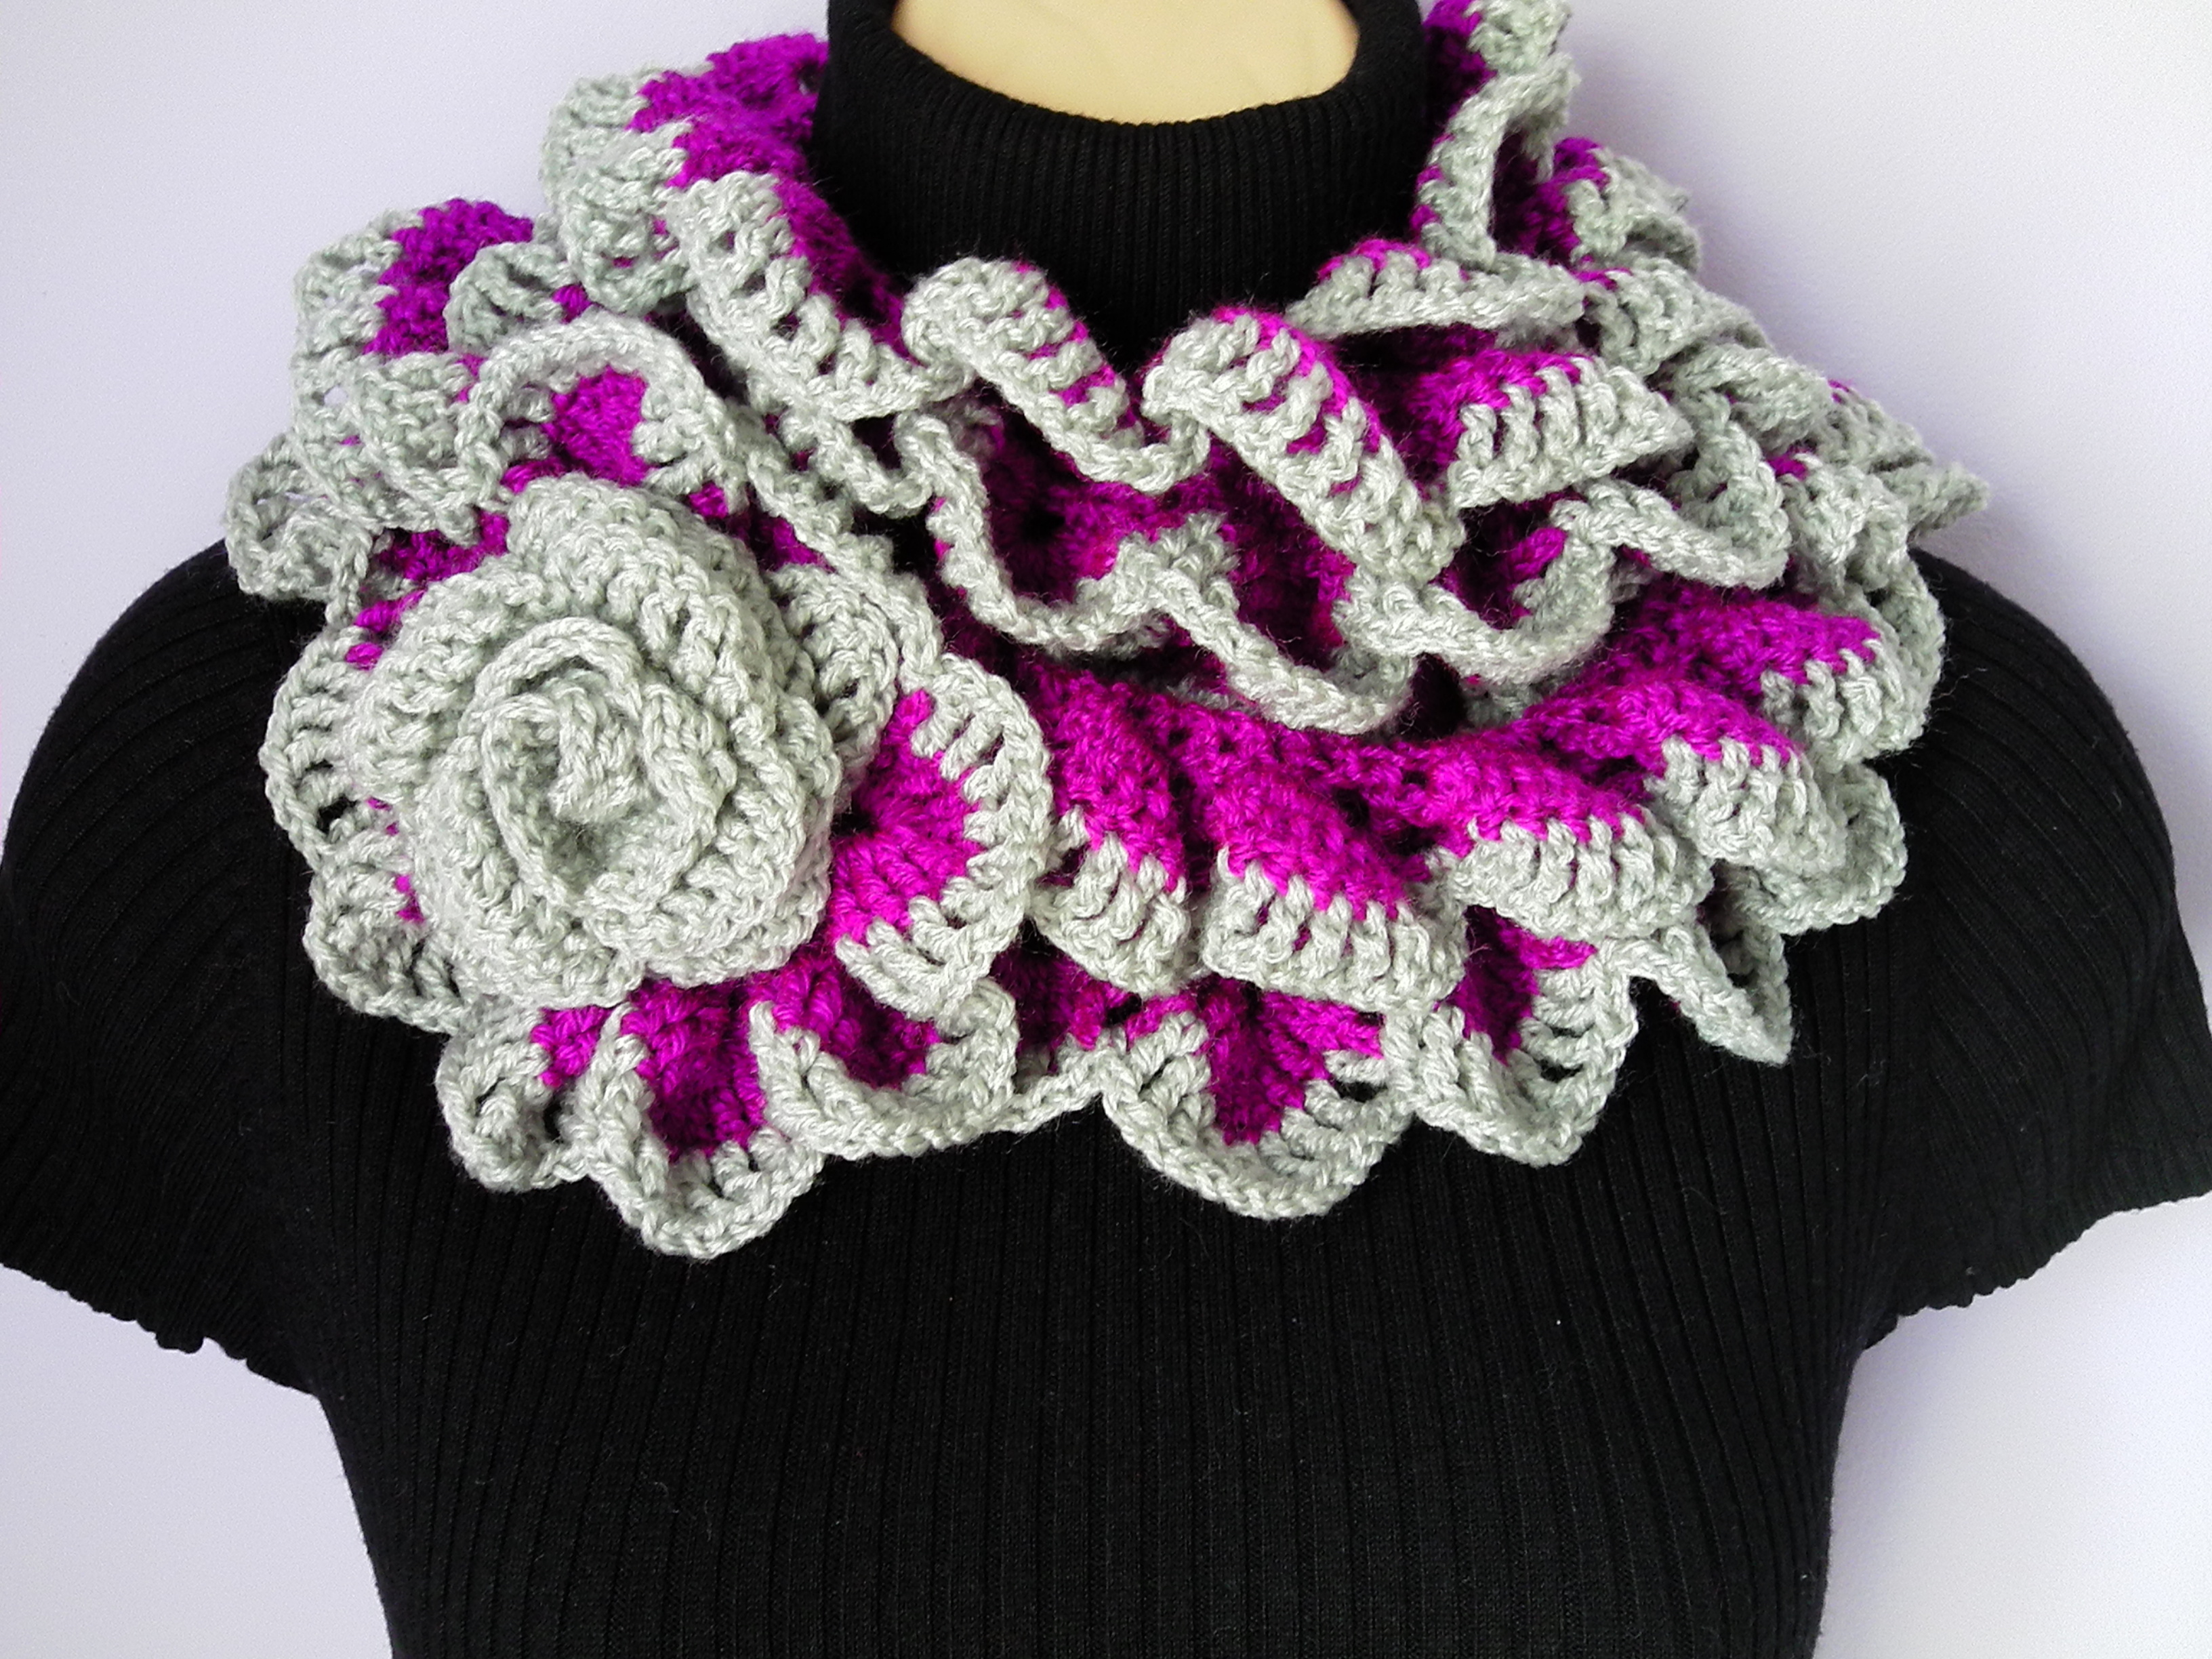 032a19066d0 Crochet Scarf with Flower Brooch / Neckwarmer / Ruffle Scarf